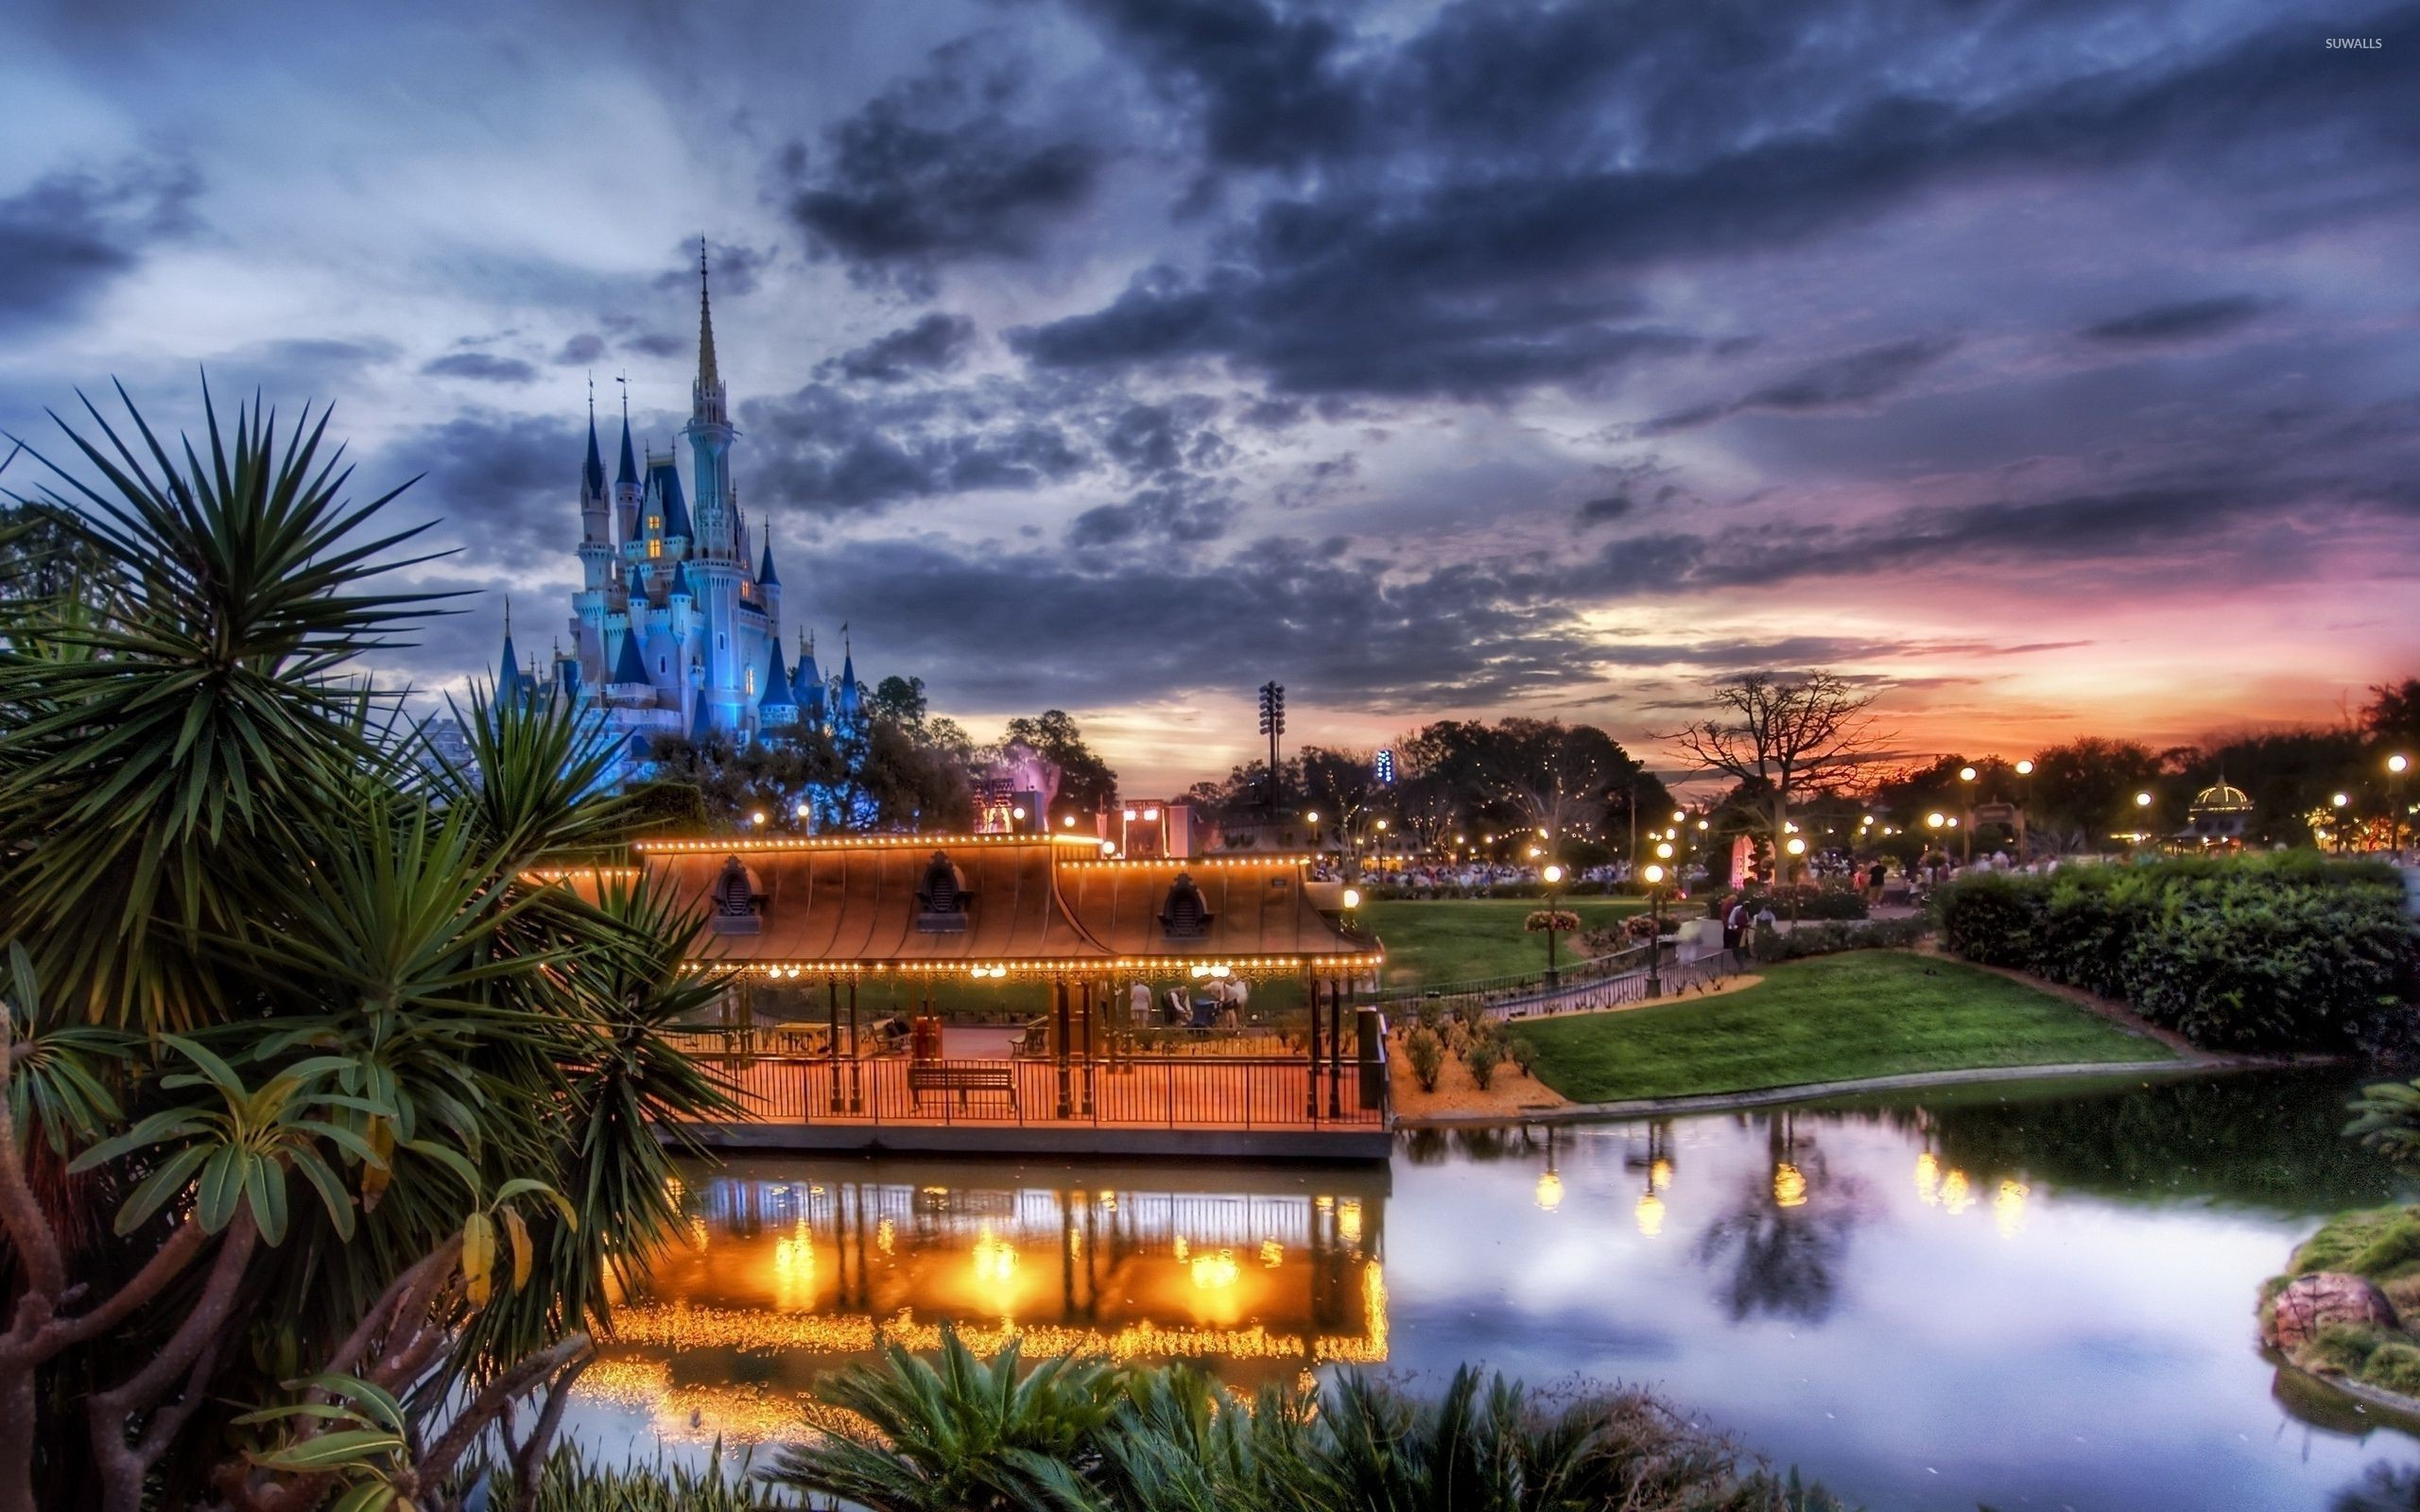 Disney World wallpaper ·① Download free backgrounds for ...